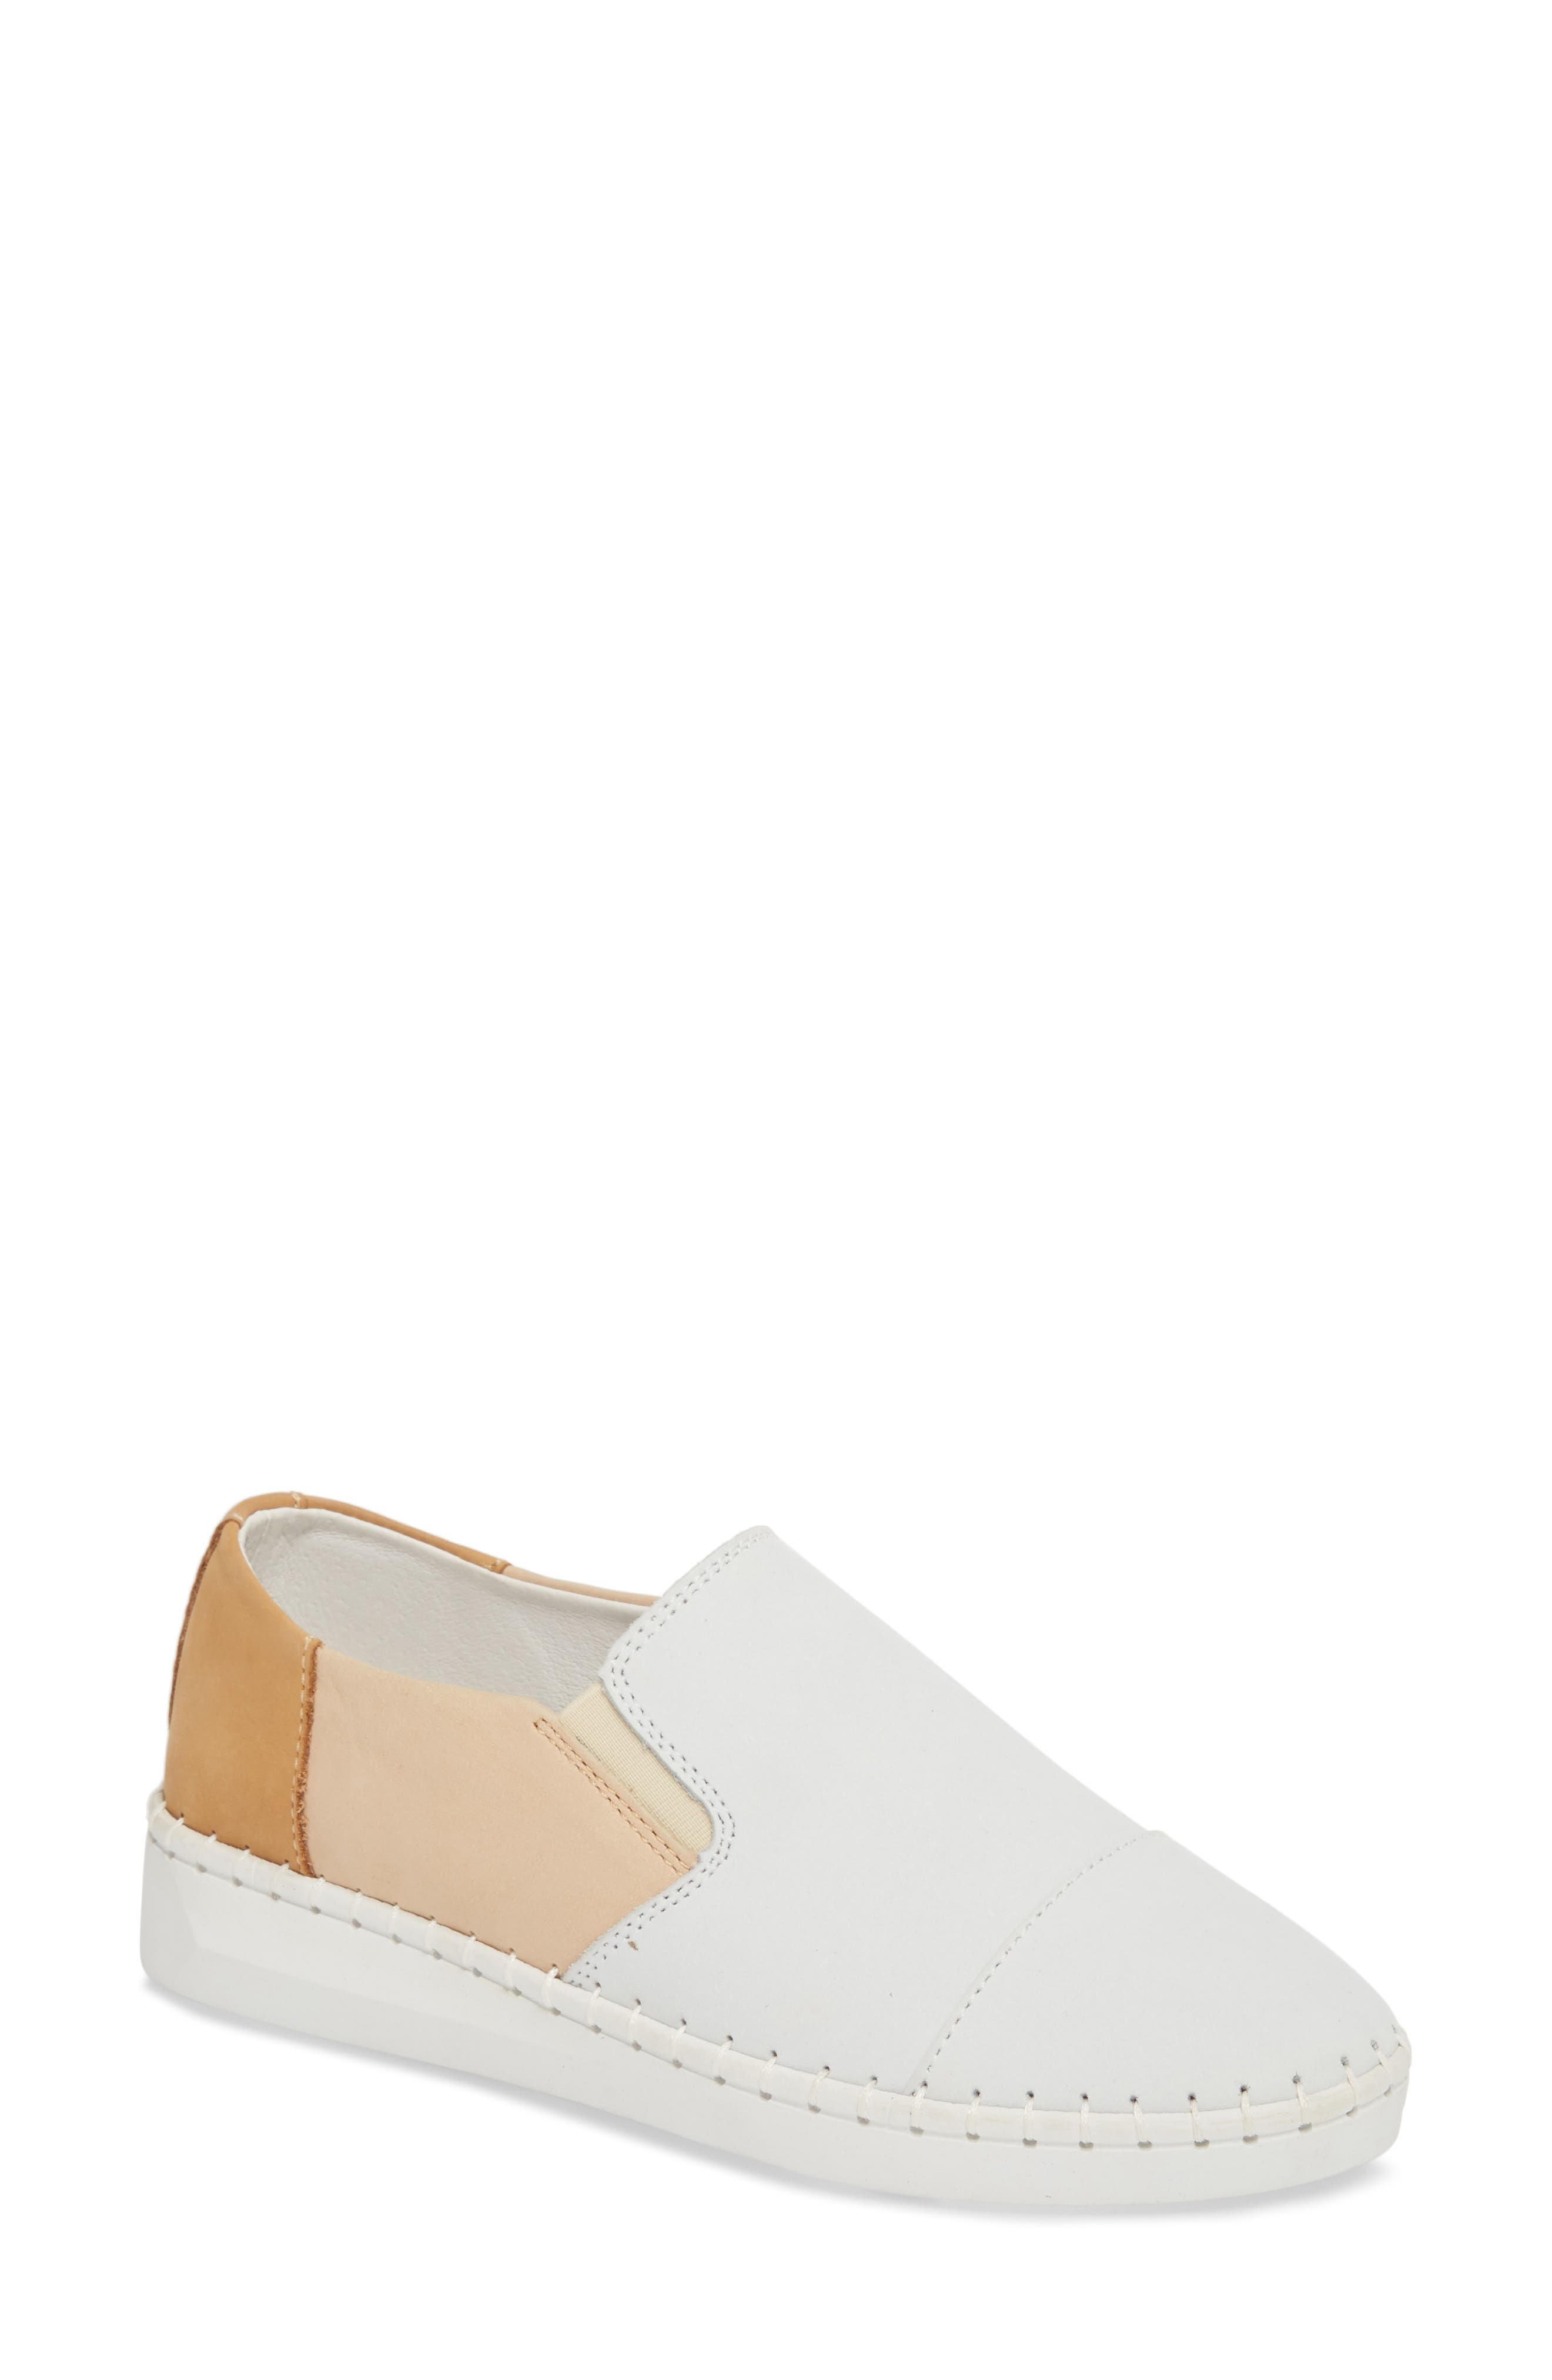 TW107 Slip-On Flat,                         Main,                         color, NUDE MIX LEATHER